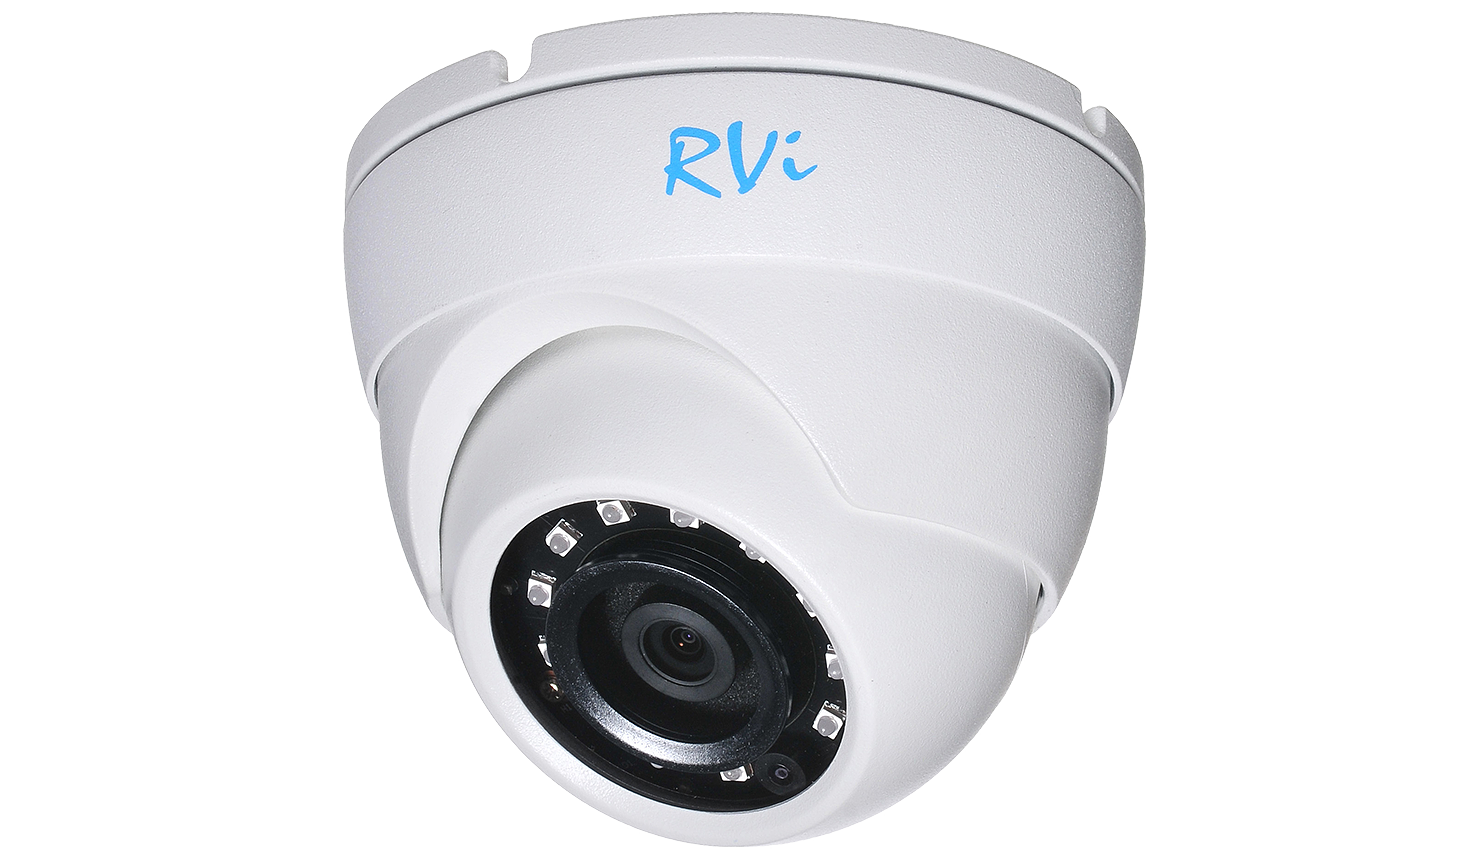 RVi-IPC32VB (2.8)